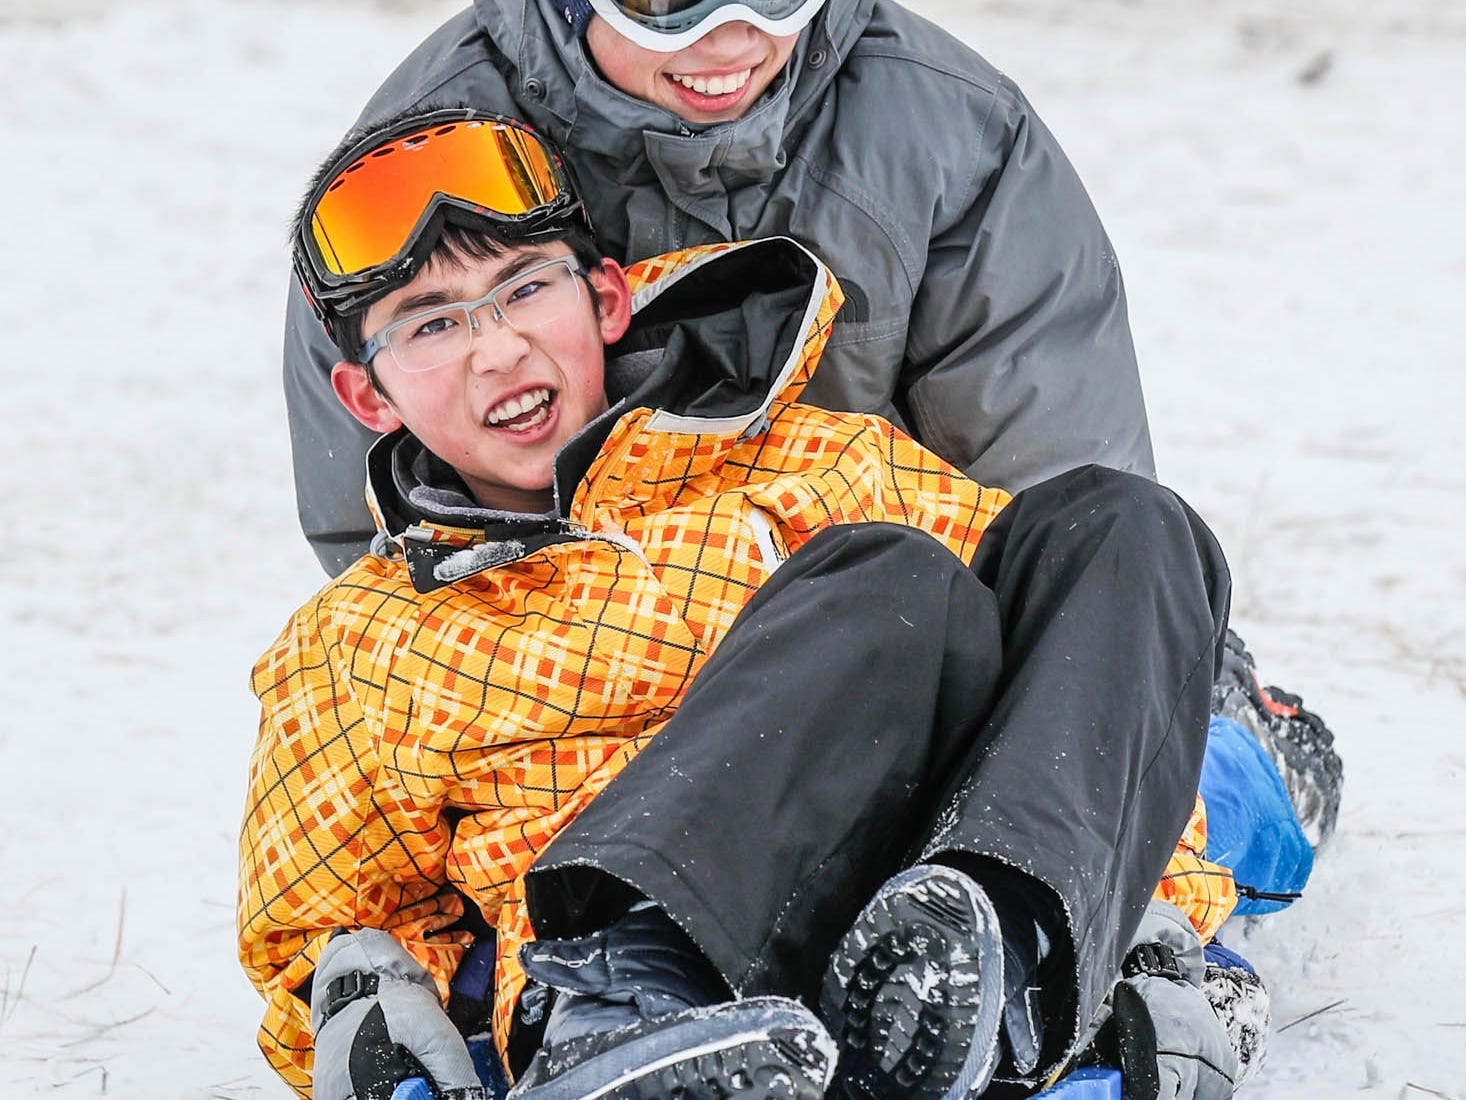 Brothers Yoshito, front, and Yuto Endo, rear, zoom down the sledding hill at West Park in Carmel Ind. on Sunday, Jan. 13, 2019.